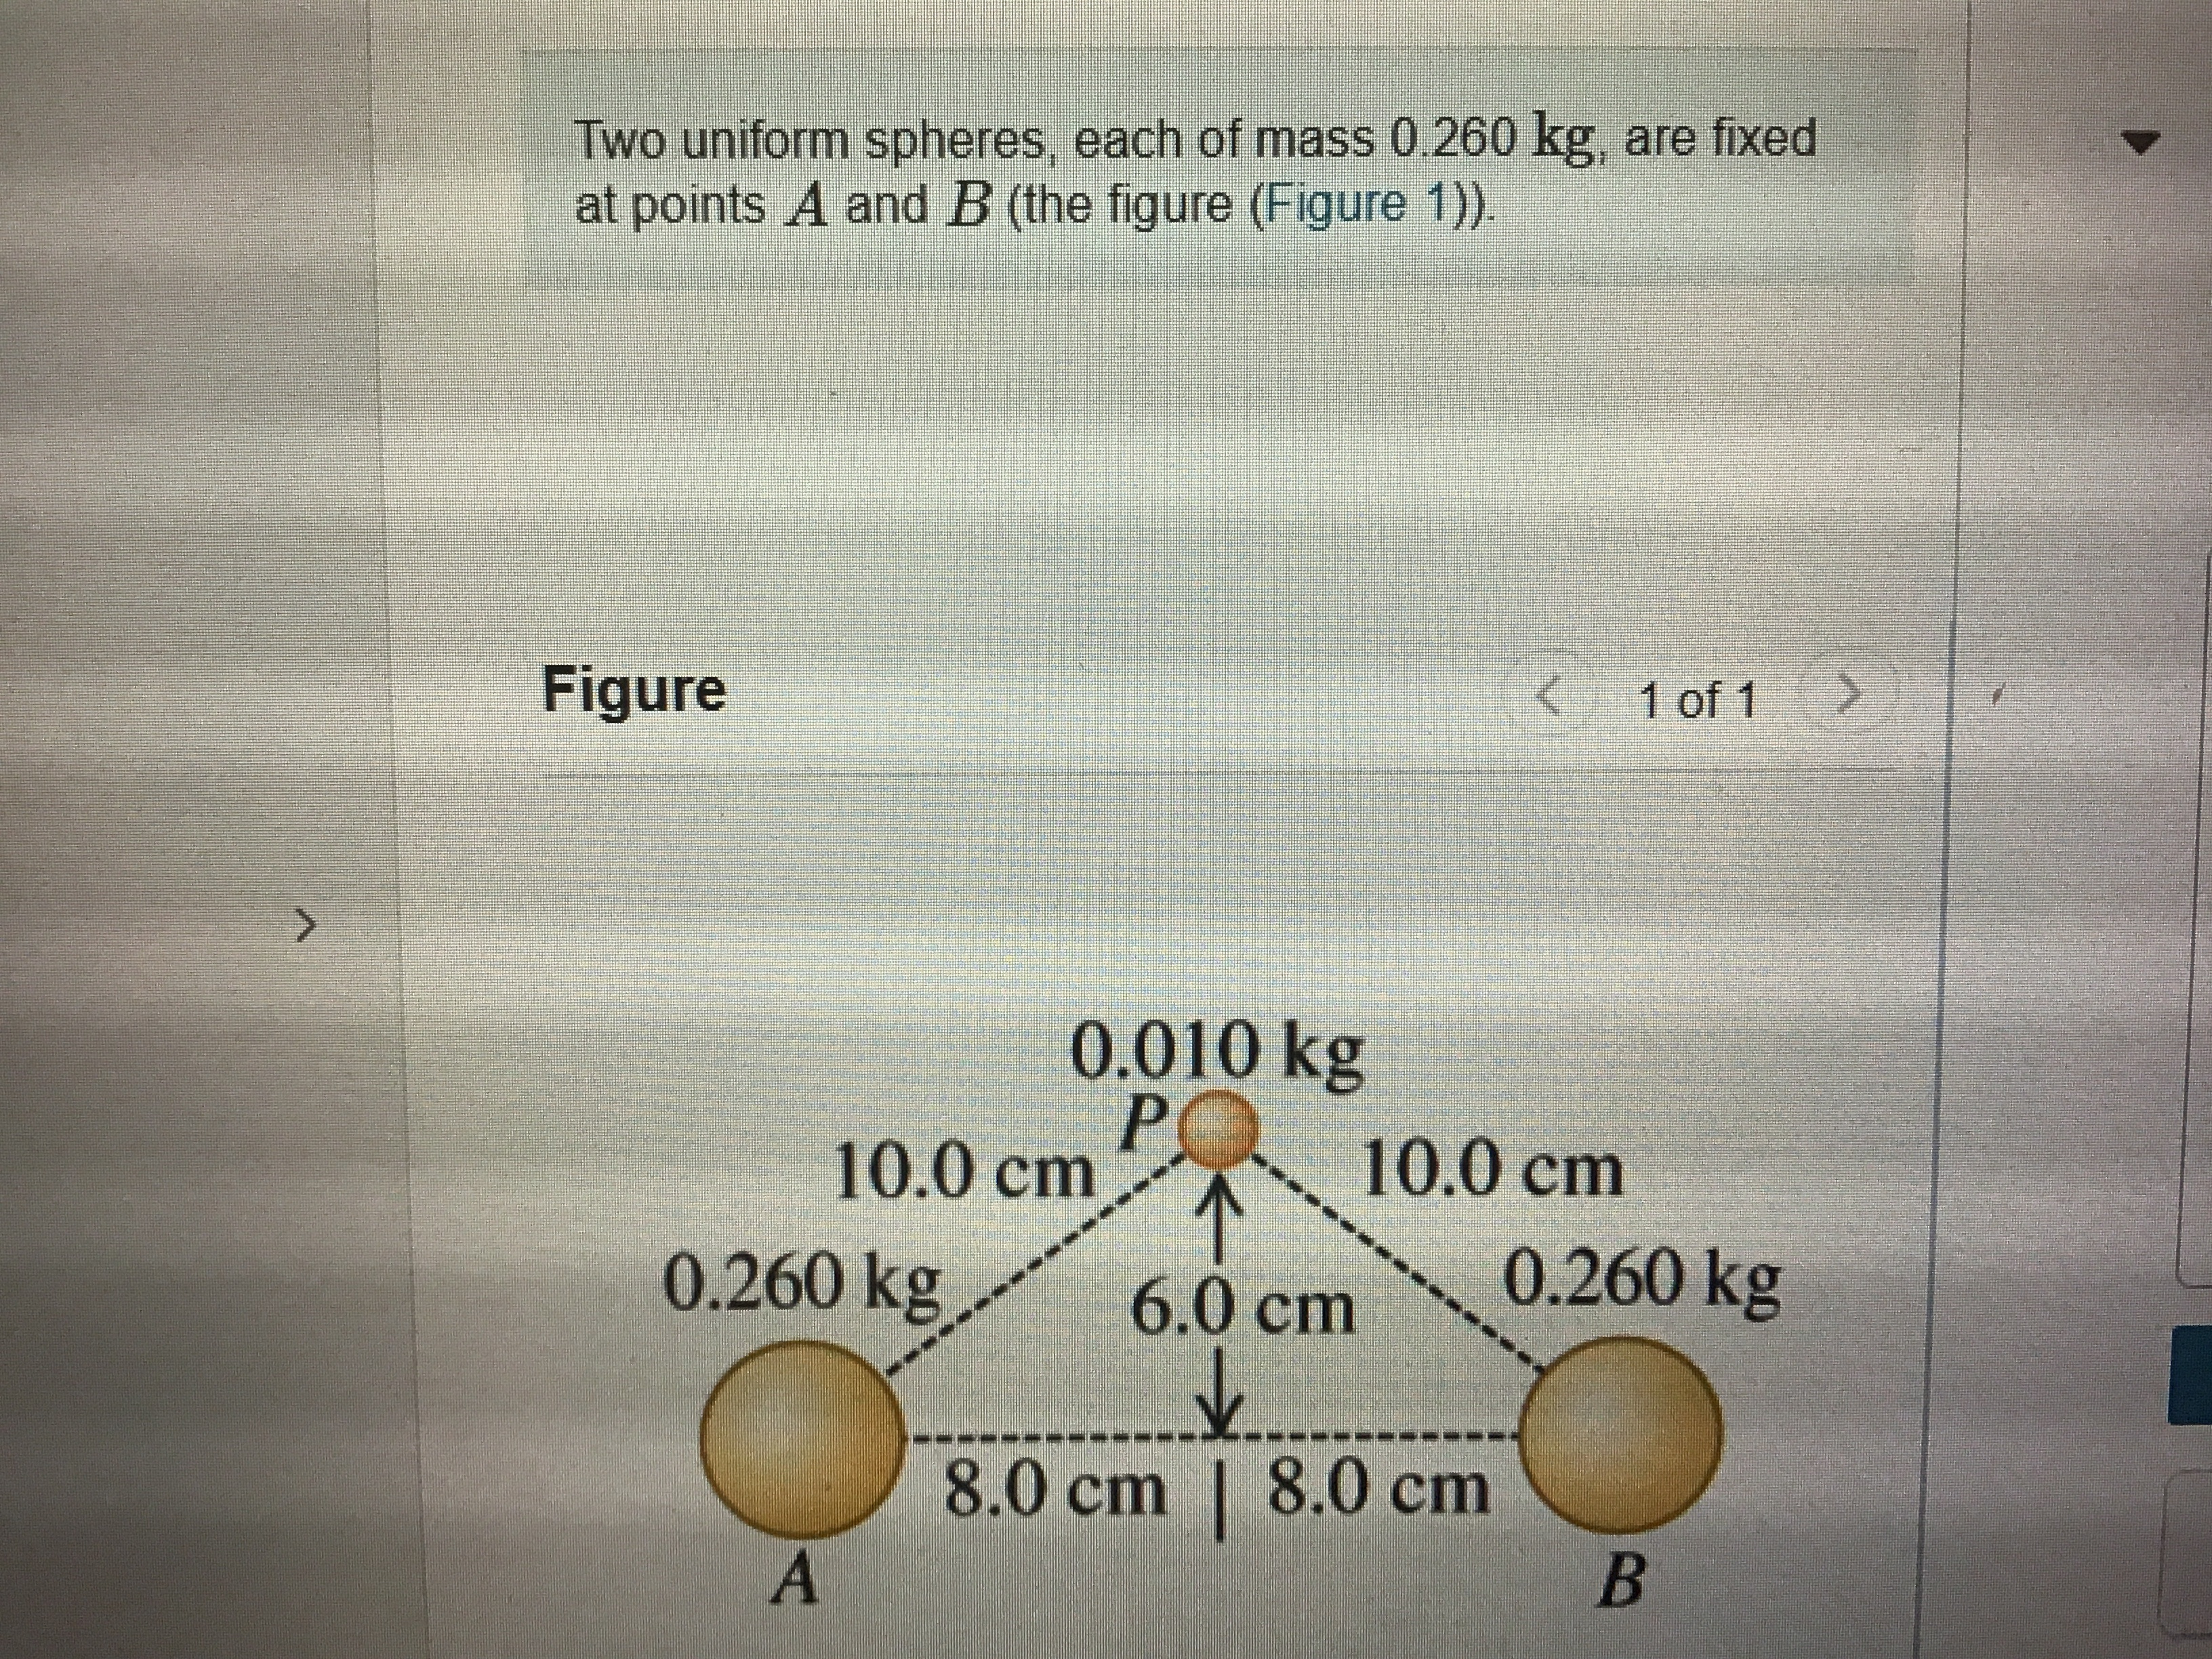 Two uniform spheres, each of mass 0.260 kg, are fixed at points A and B (the figure (Figure 1). Figure 1 of 1 0.010 kg 10.0 cm 10.0cm 0.260 kg 6.0cm 0.260 kg 8.0cm   8.0 cm